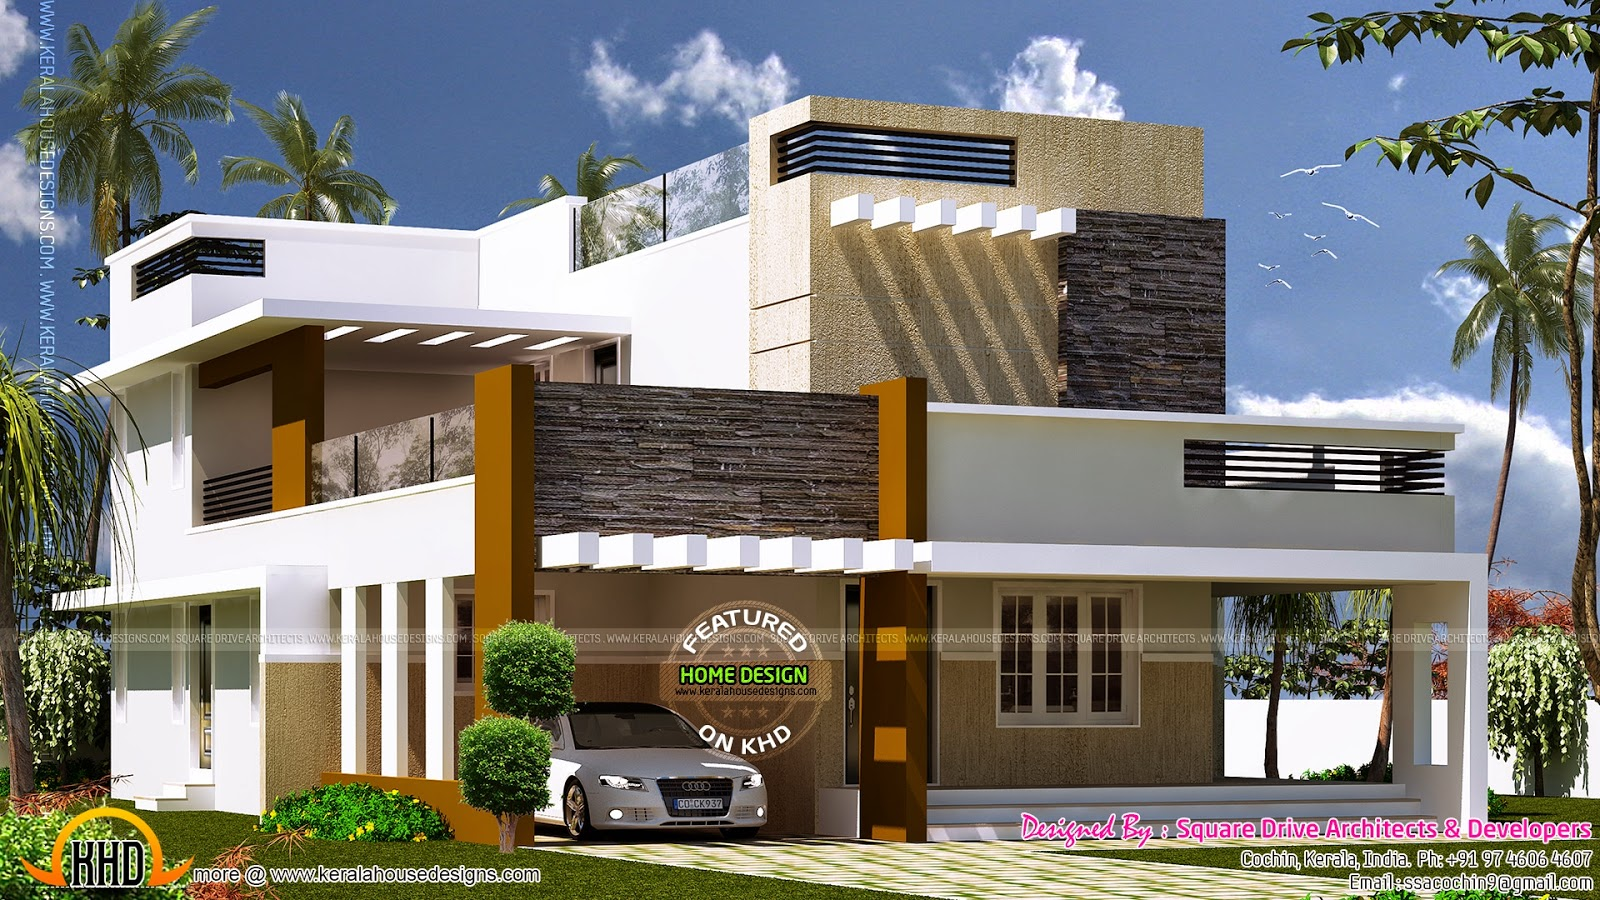 Exterior design of contemporary villa kerala home design Plans for villas